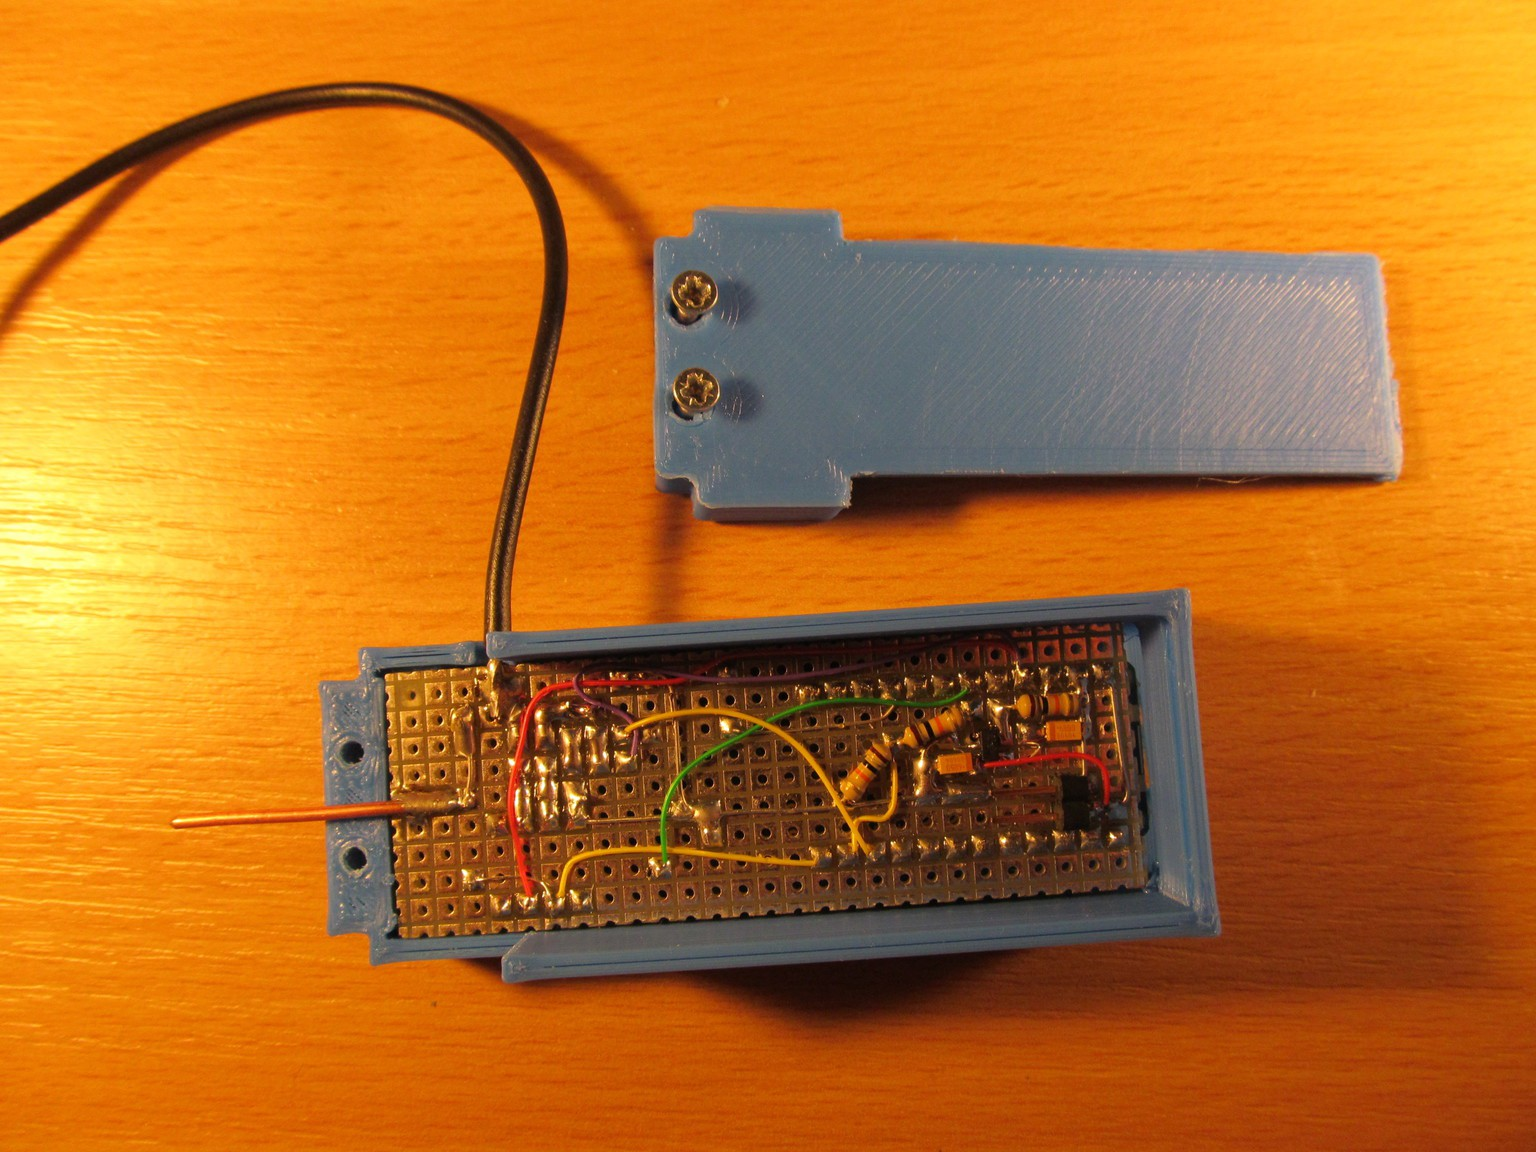 Shorty Short Circuit Finder Buzzer Beeper Circuits Caroldoey And Made A Little Demonstration Of Its Functionality